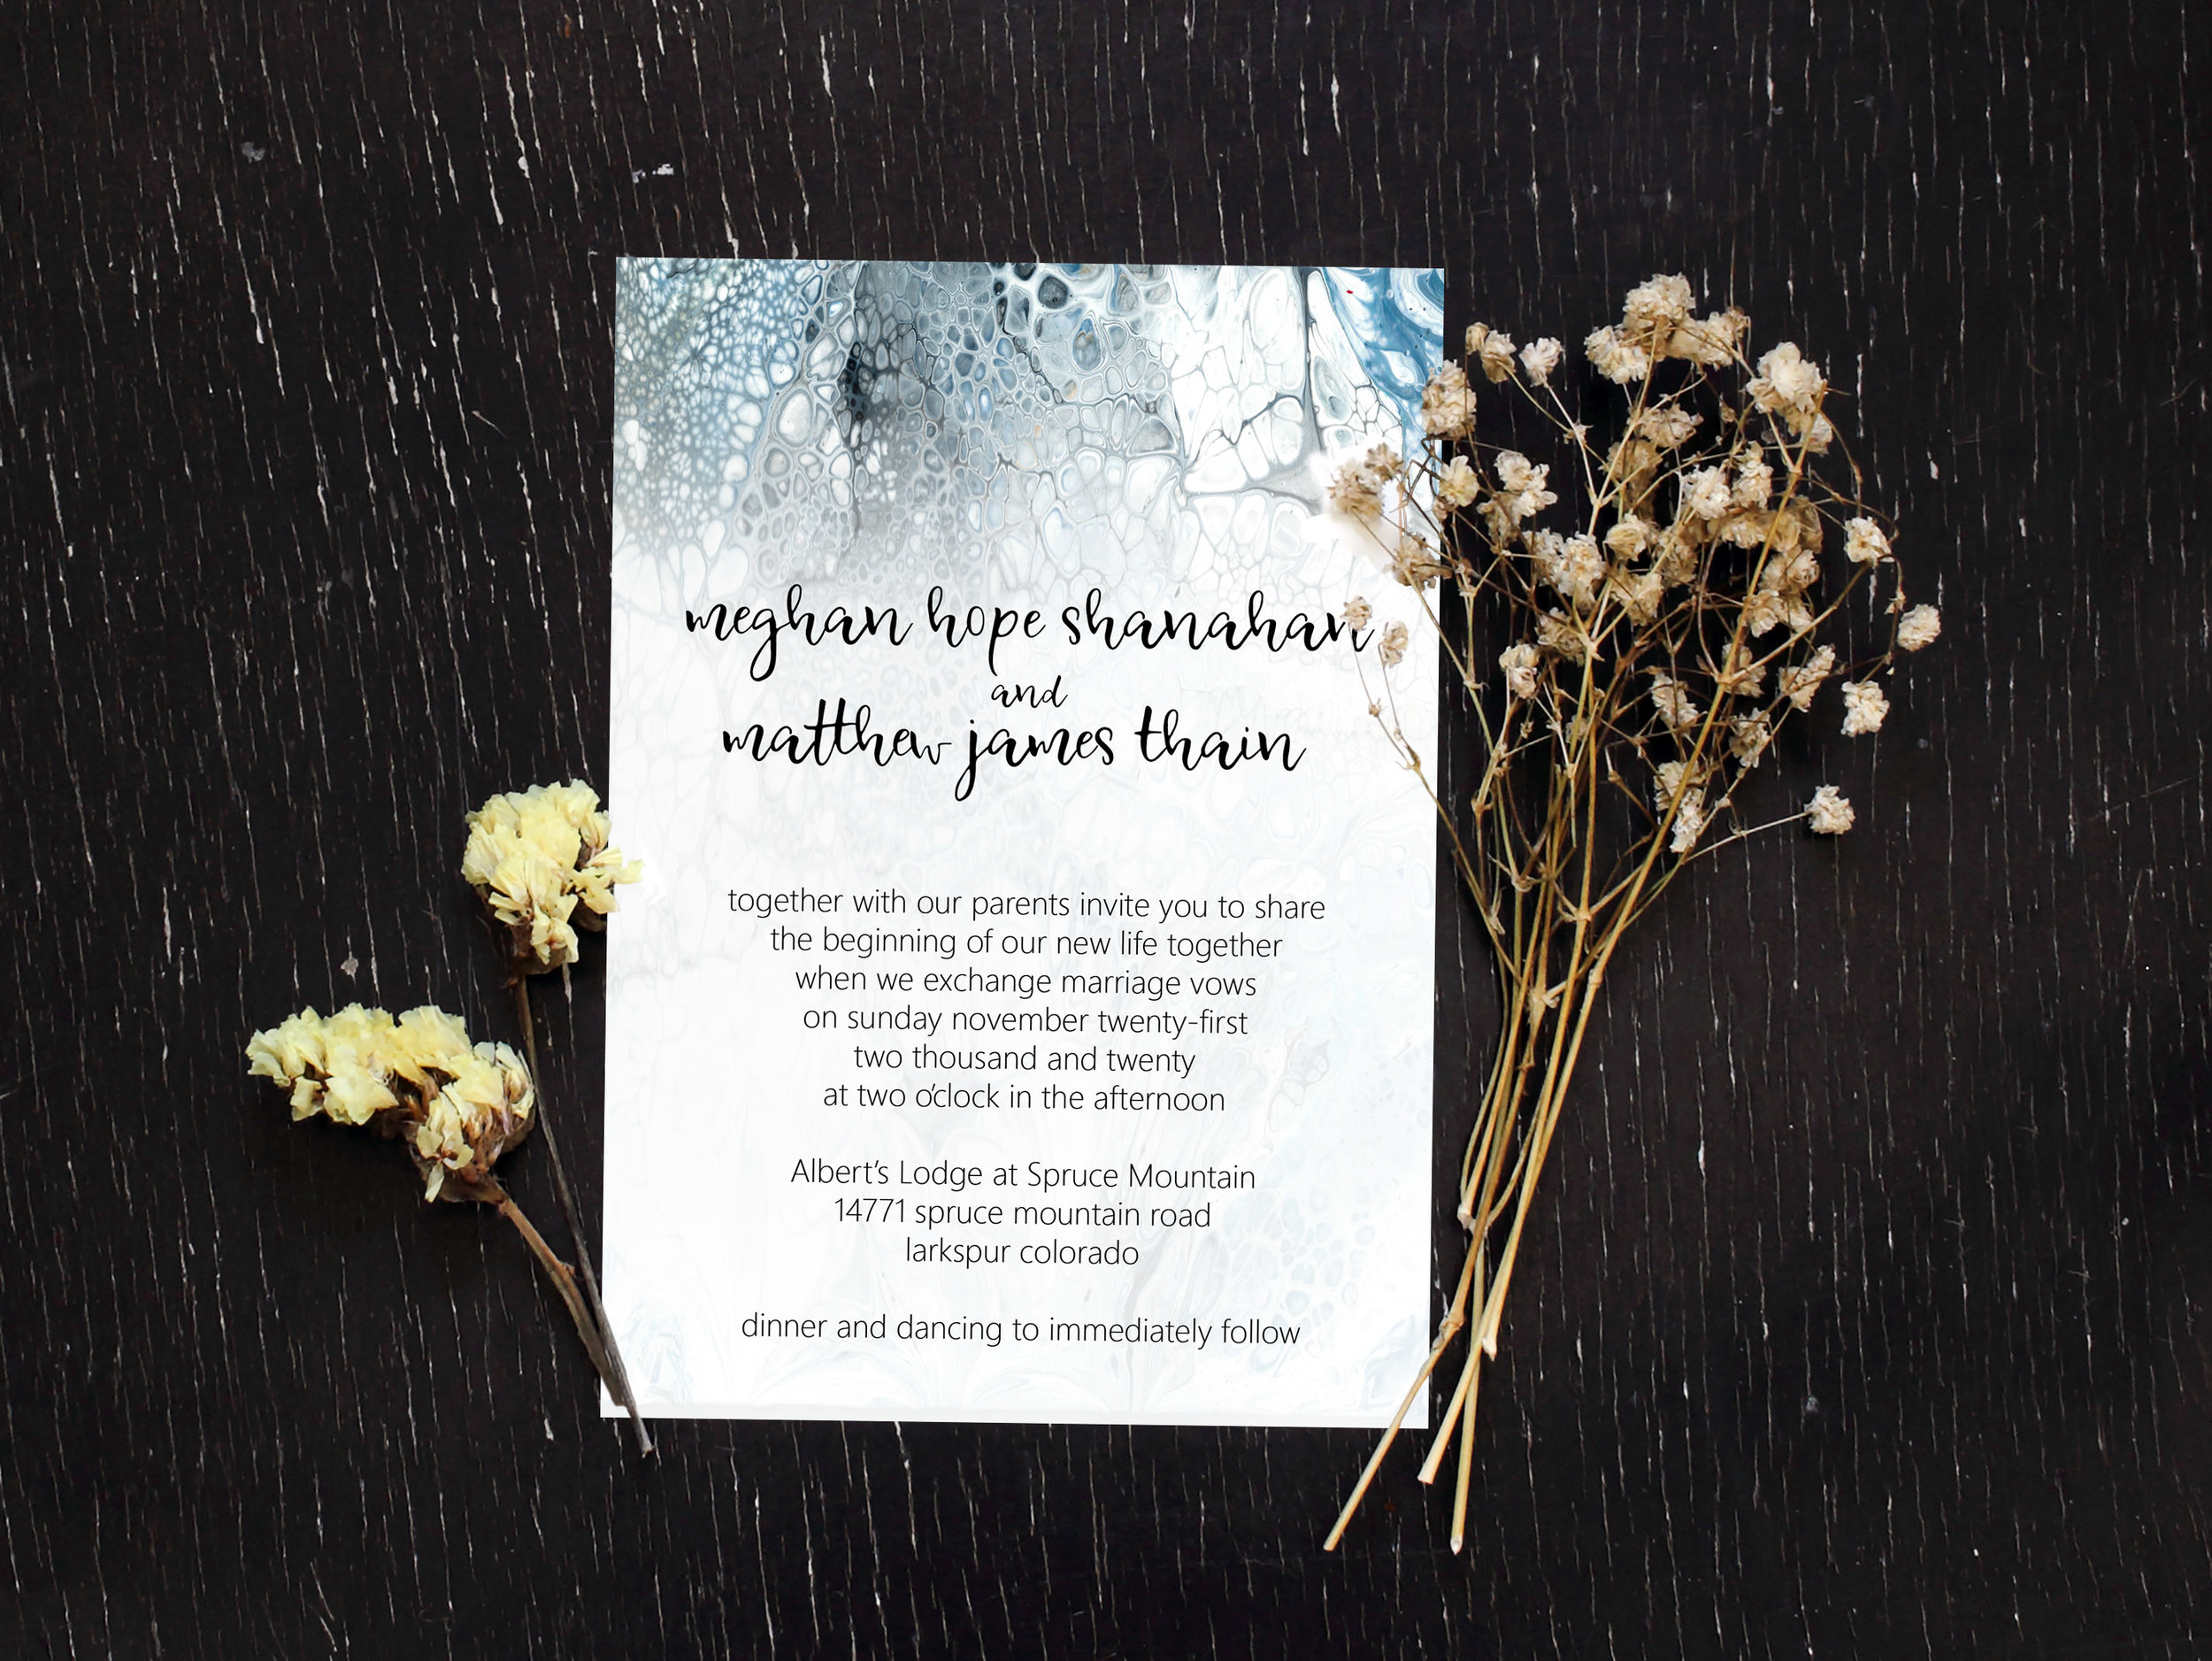 My Grey Frost invitation was created using the acrylic fluid pour method.  Seriously fun and seriously messy.  My kitchen table - ahem, my art studio, excuse me - has never been quite the same.